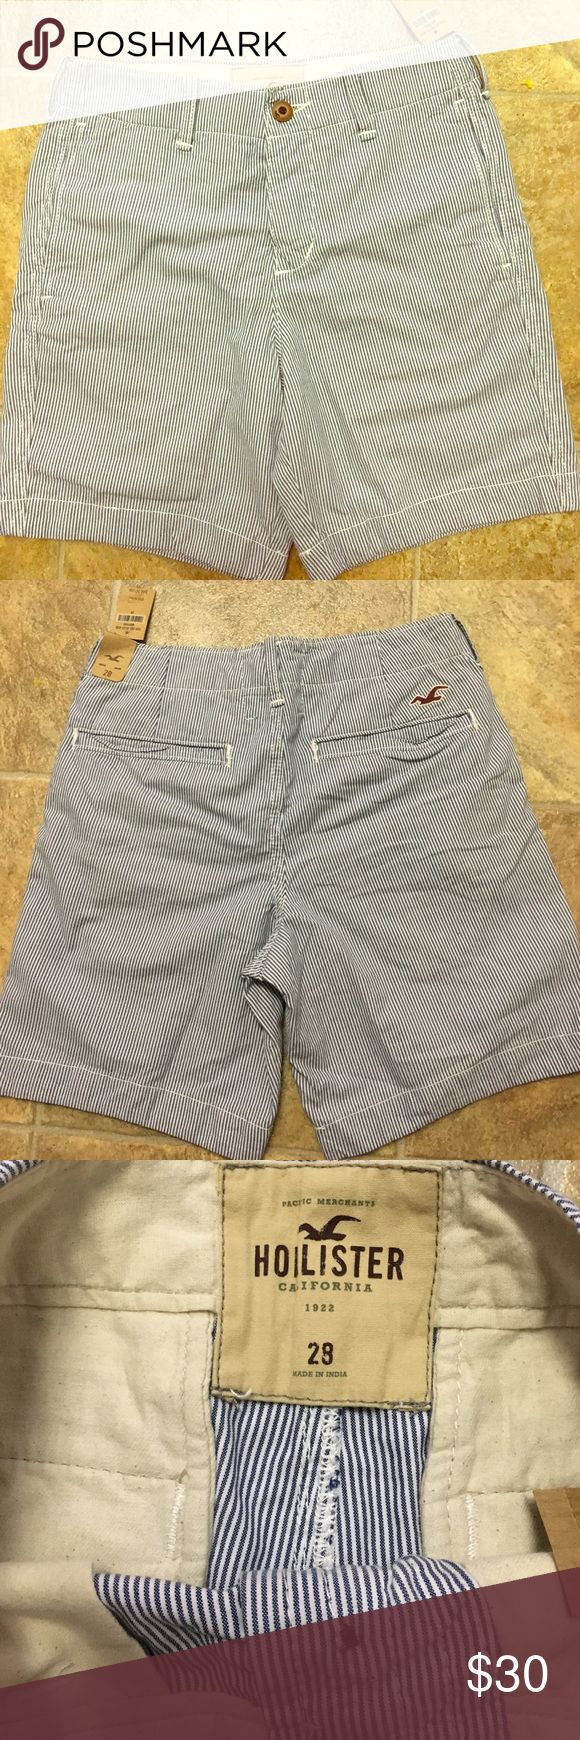 Hollister guys shorts NWT Hollister Shorts Flat Front